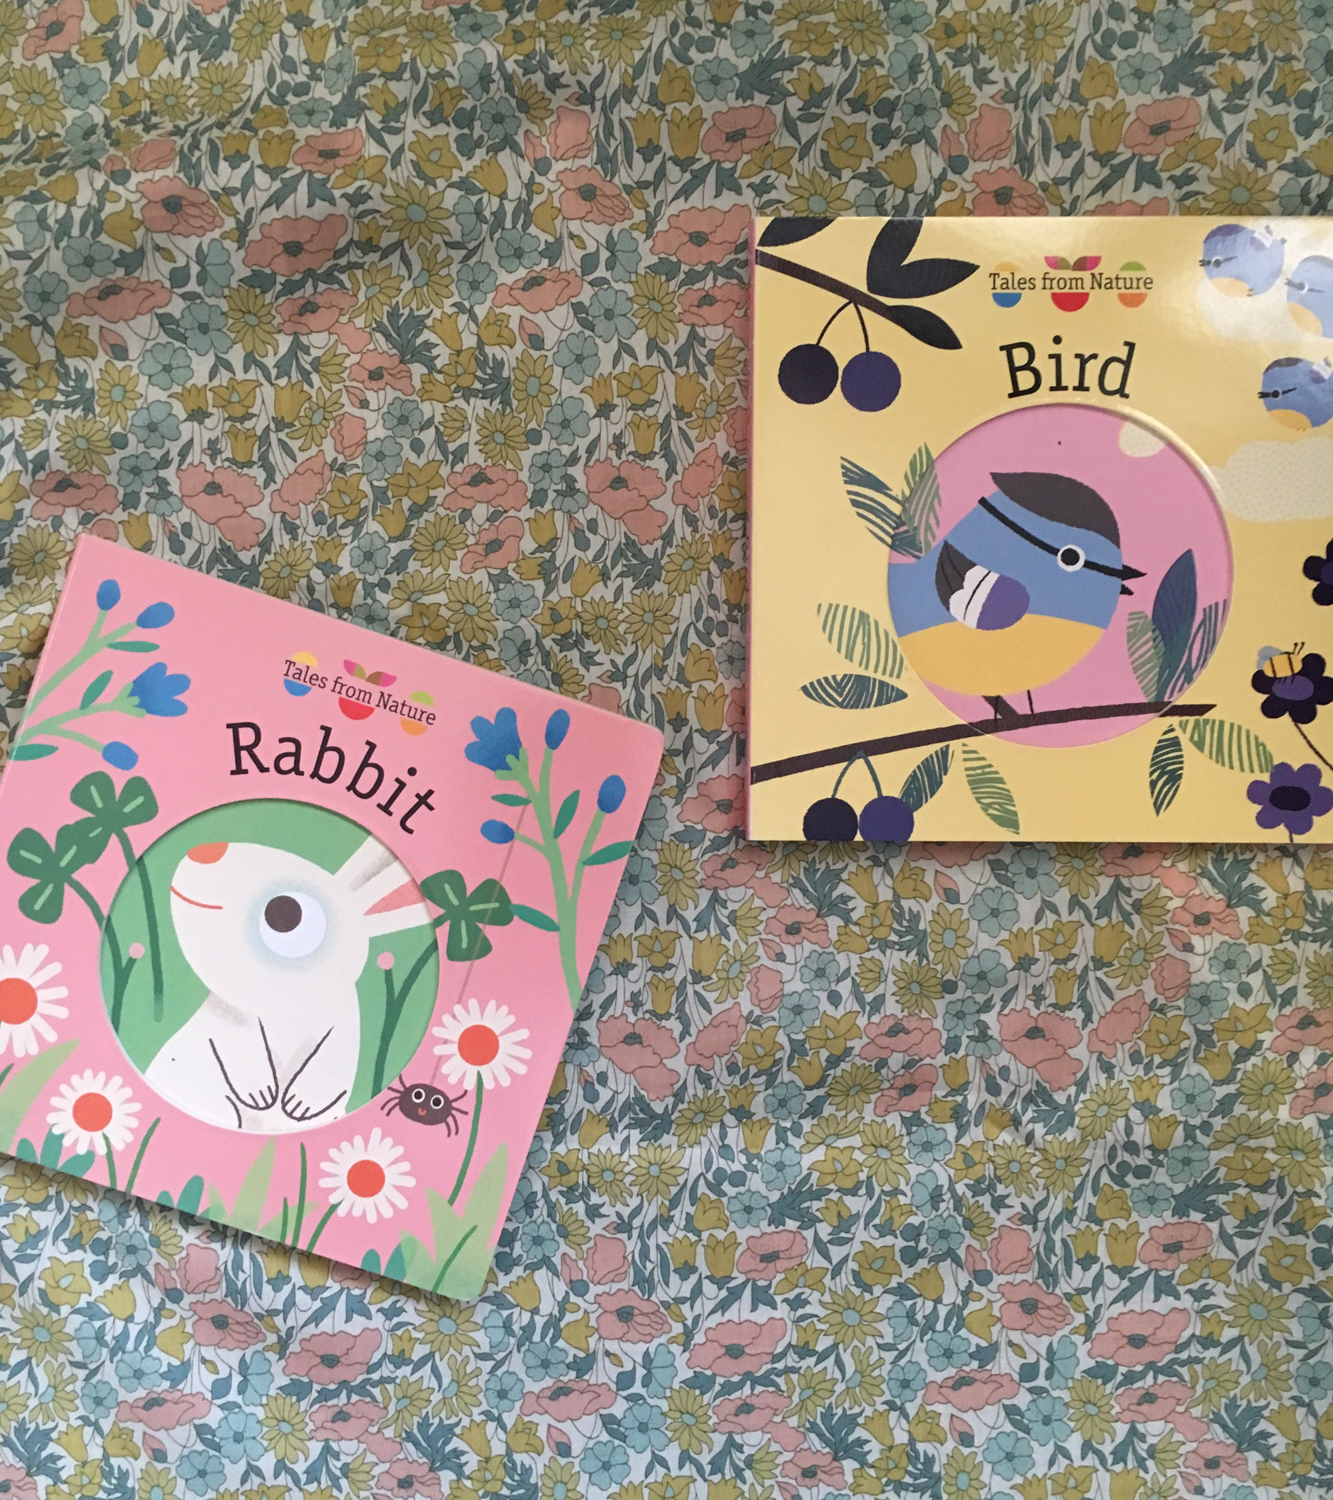 Tales From Nature: A cheerful new wildlife series for young children